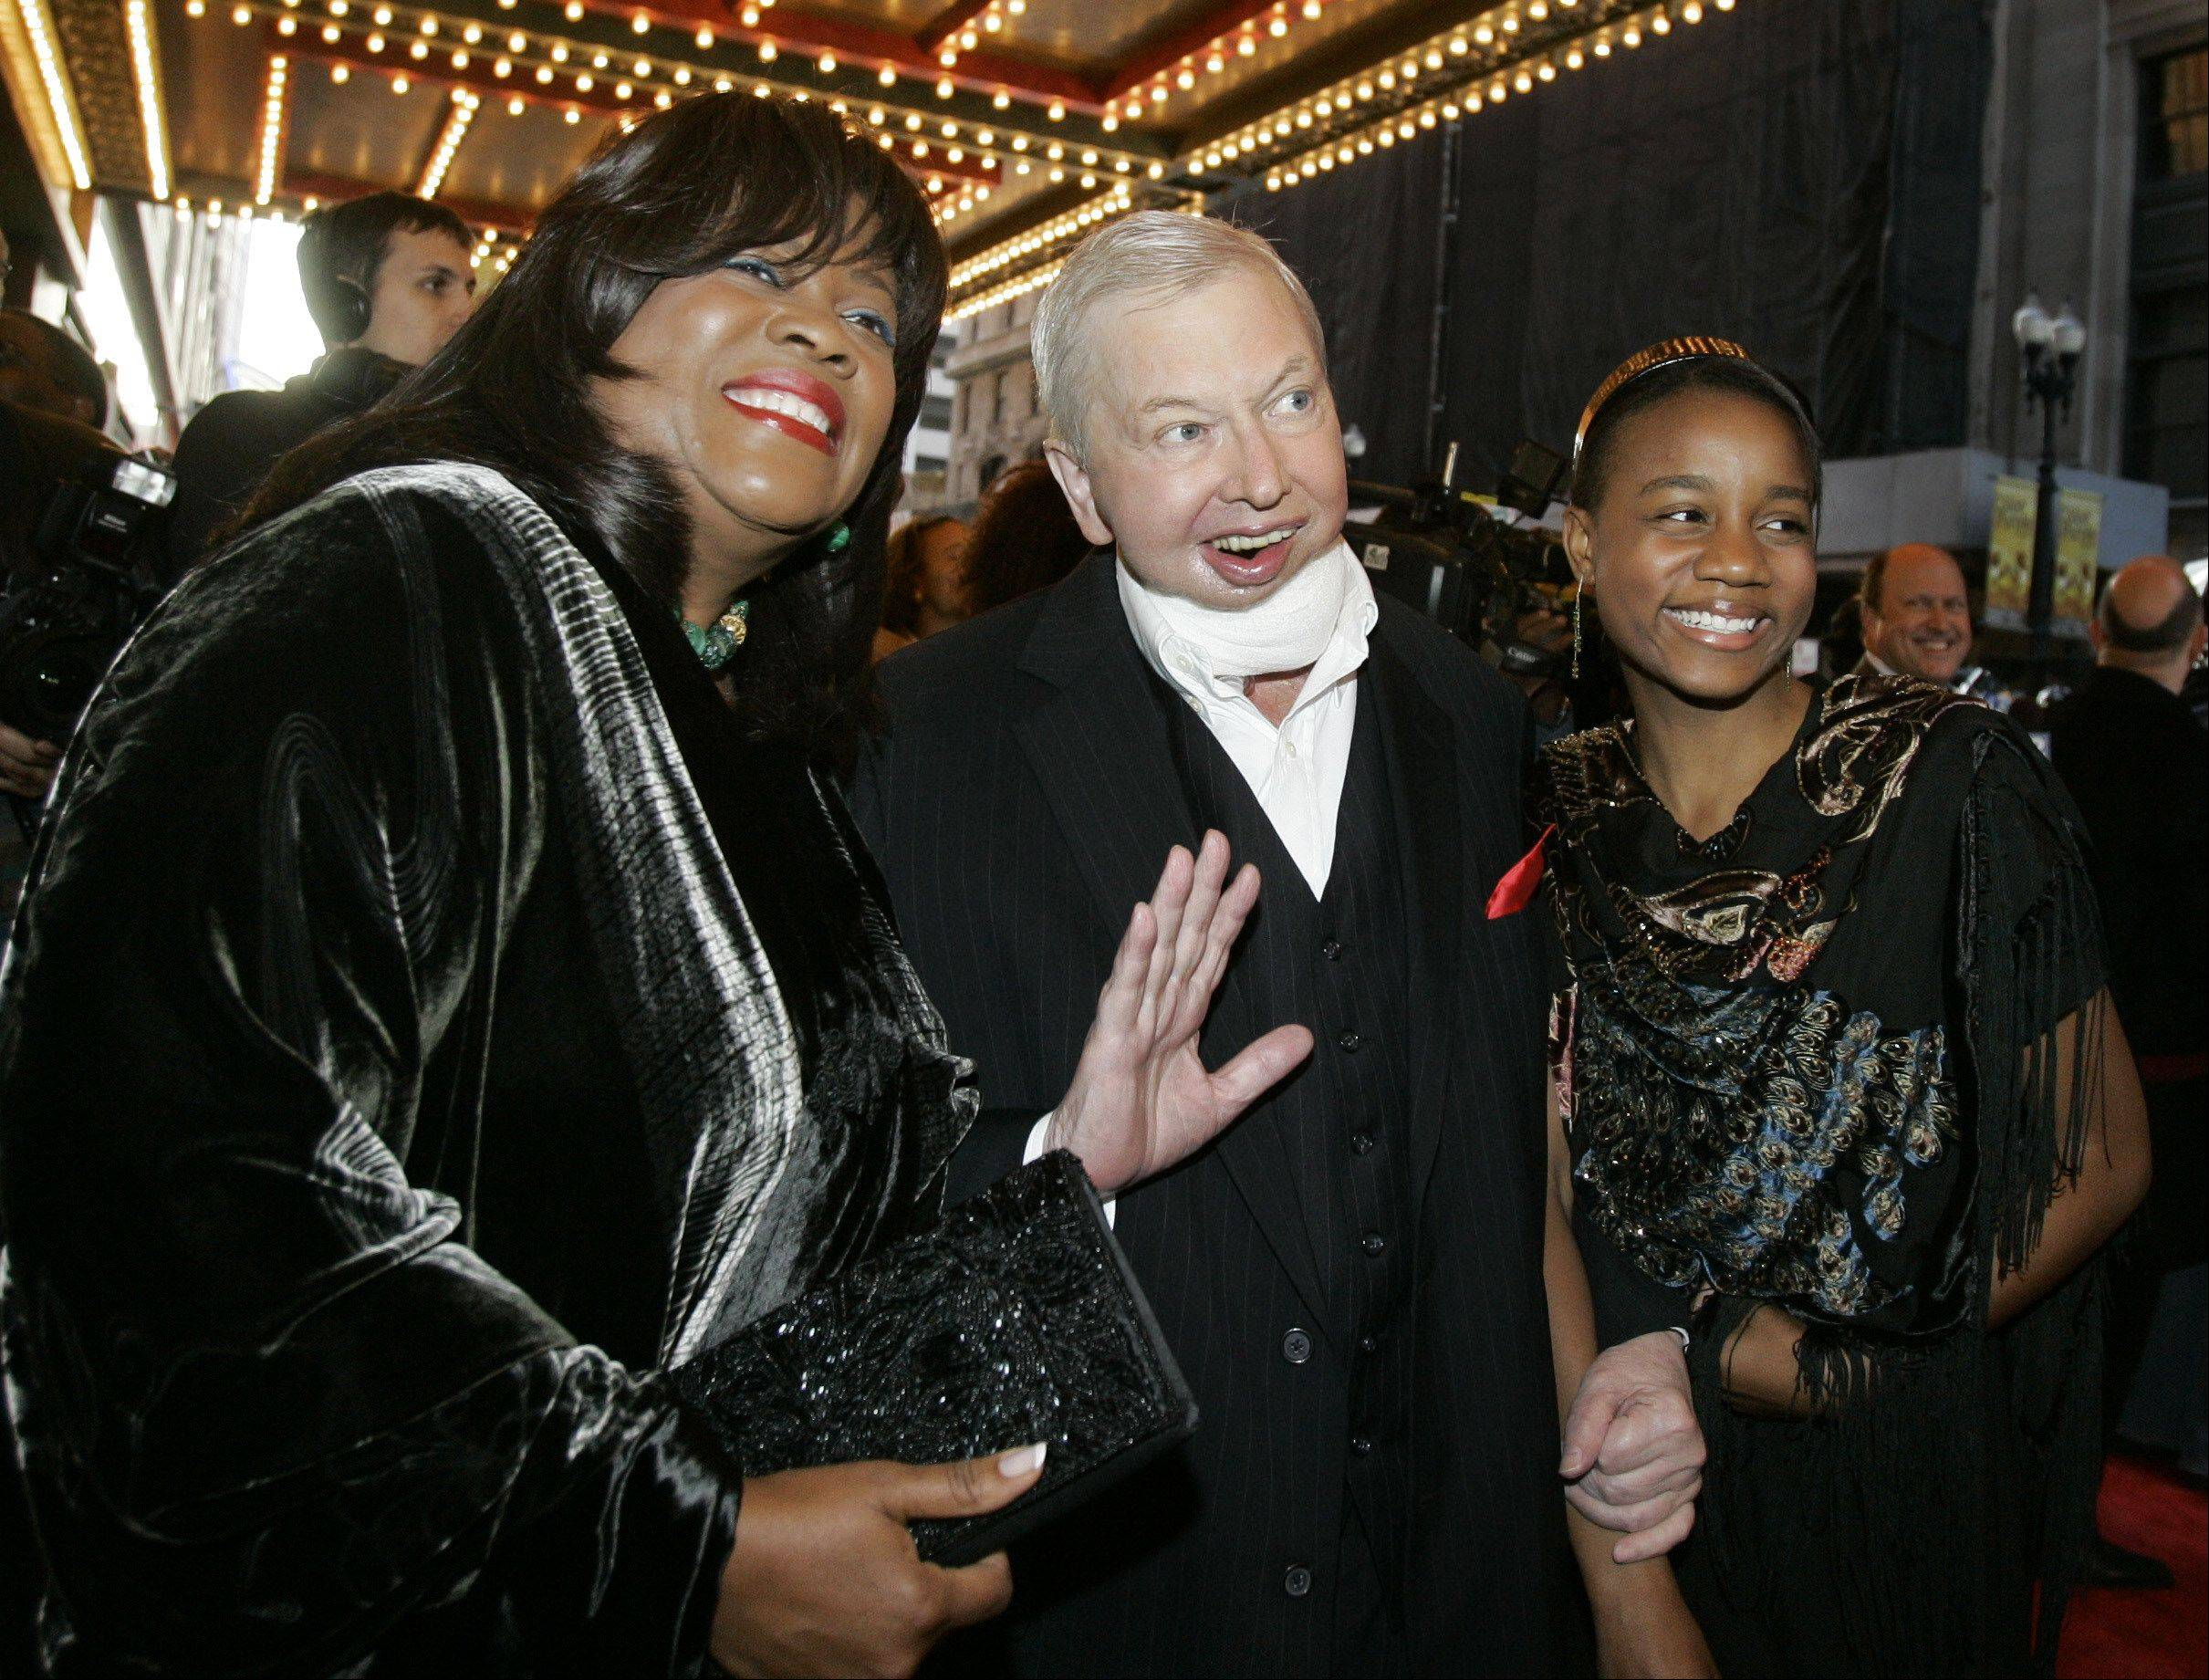 Film critic Roger Ebert, center, his wife Chaz, left, and their granddaughter Raven Evans, right, arrive for the Chicago premier of the the Broadway hit The Color Purple, Thursday, May 3, 2007.